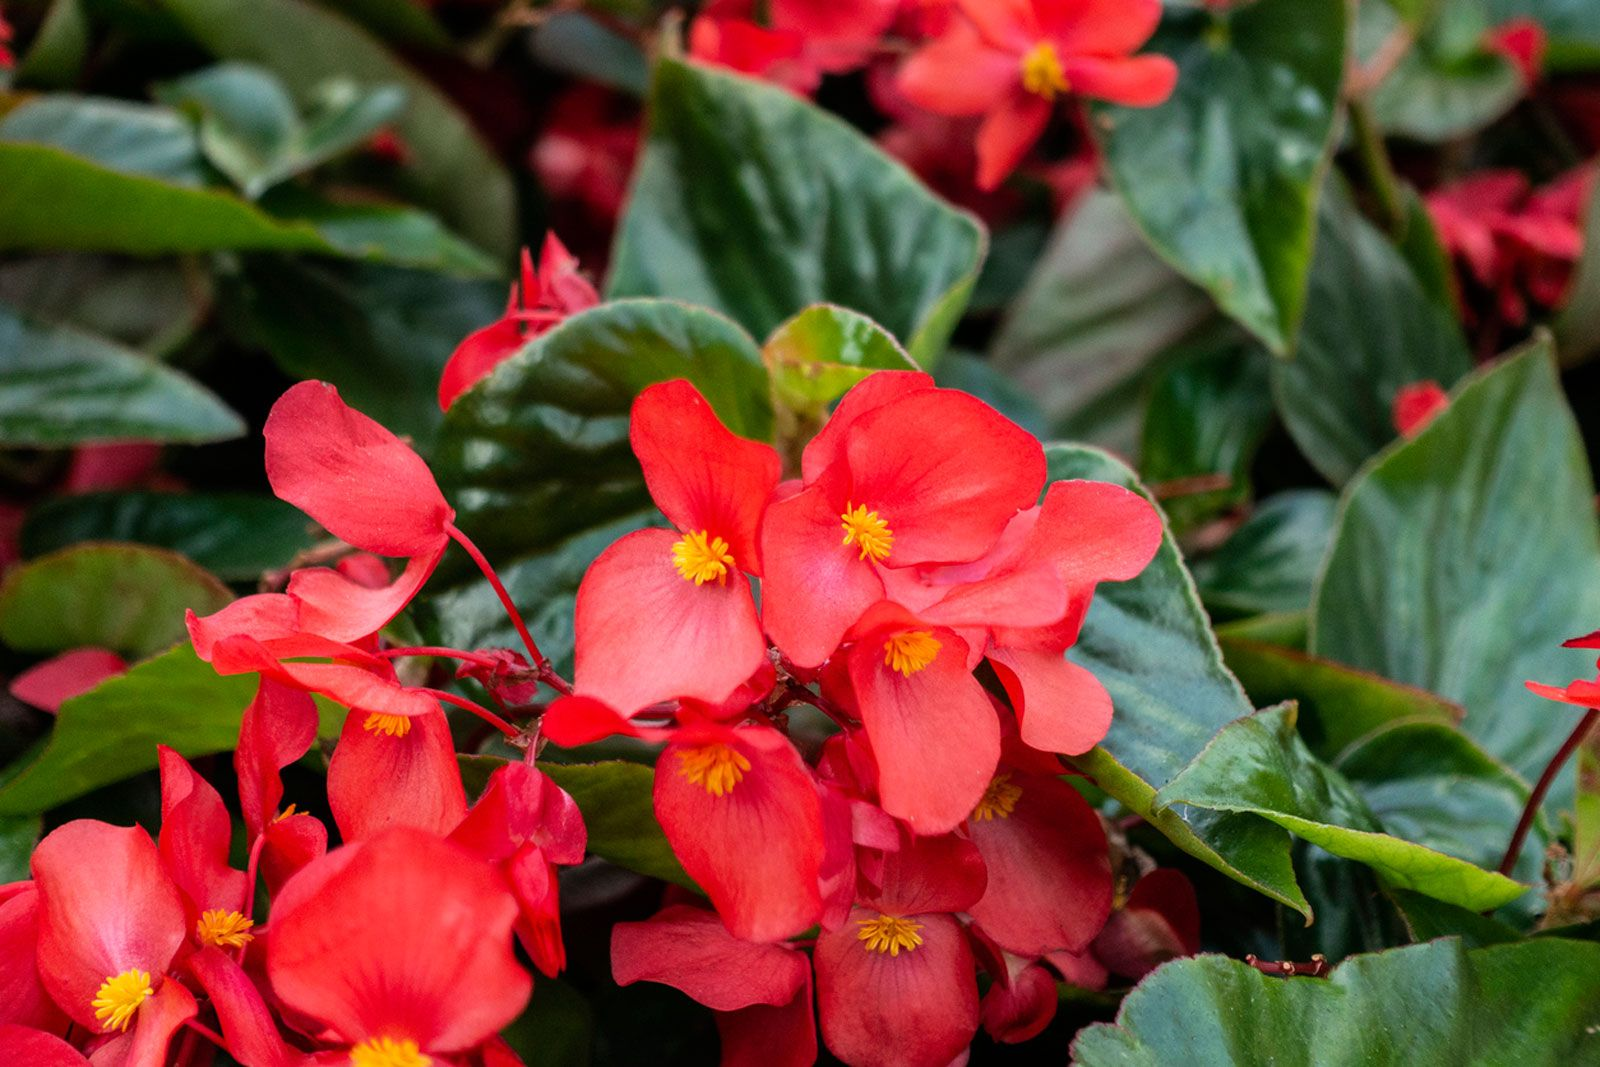 Growing Annual Begonia Plants Information On How To Grow Begonias In 2020 Begonia Red Plants Plants